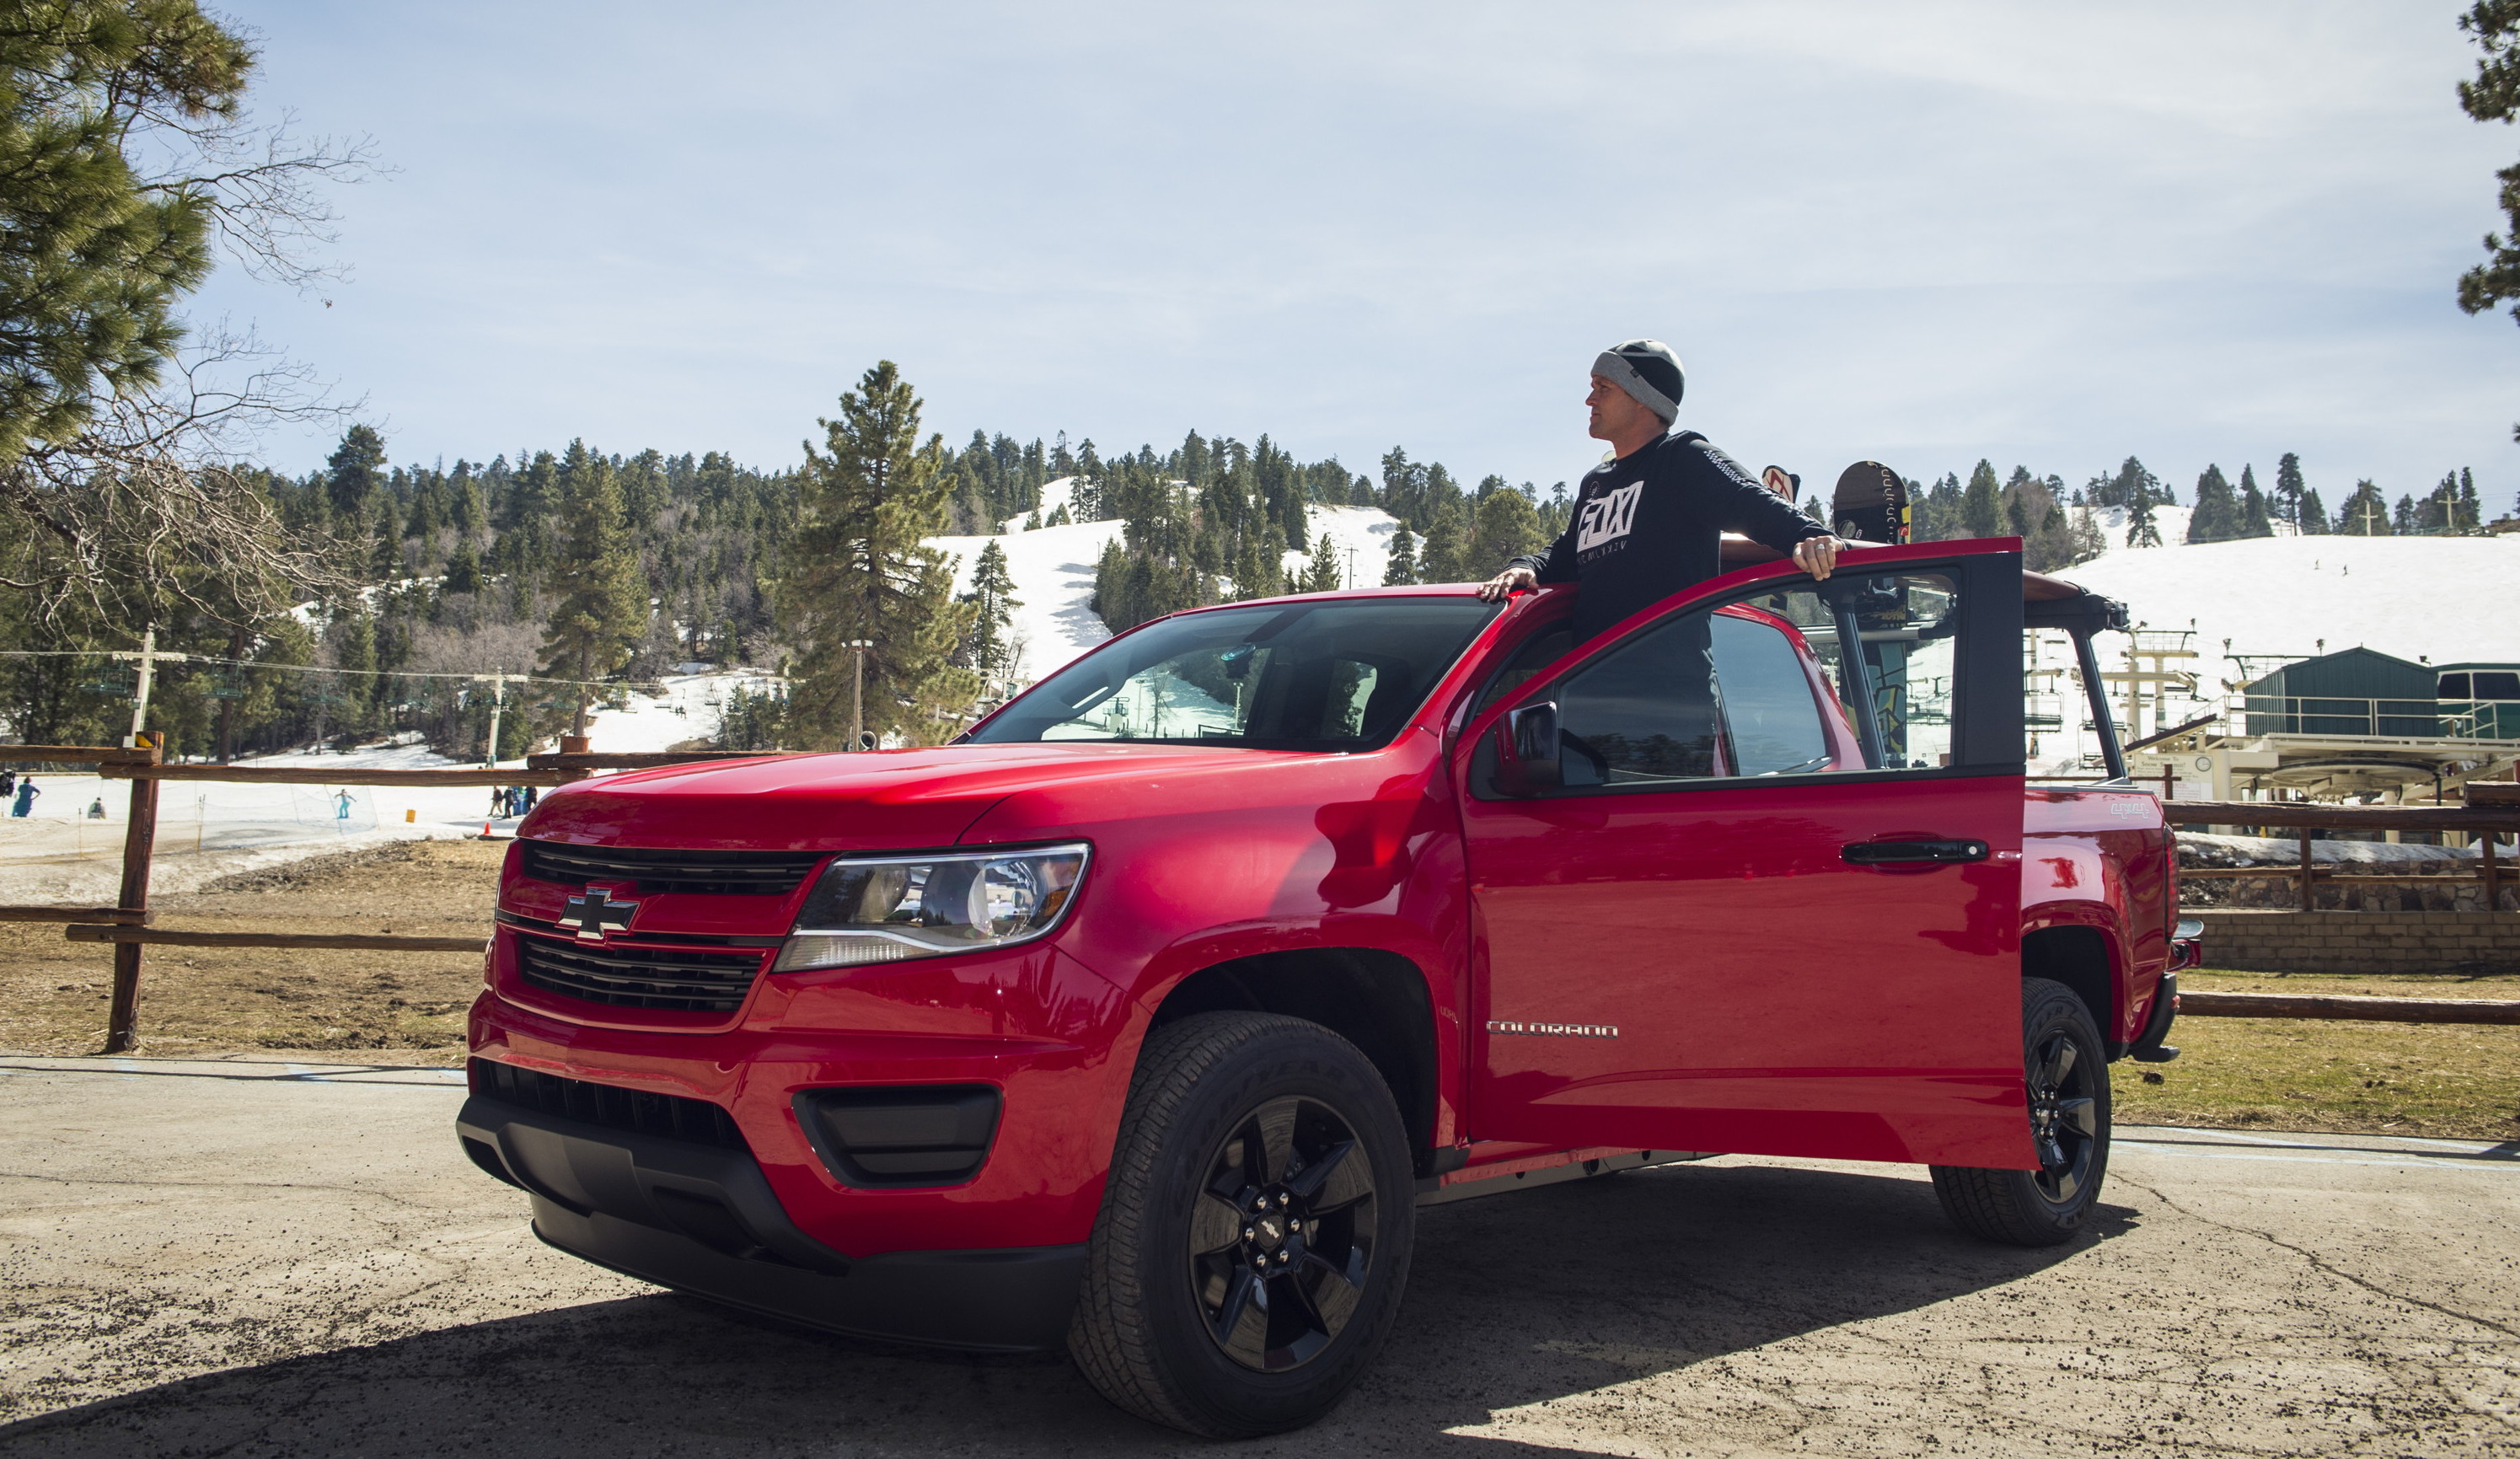 chevy introduces 2017 colorado shoreline edition for california beachgoers the news wheel. Black Bedroom Furniture Sets. Home Design Ideas